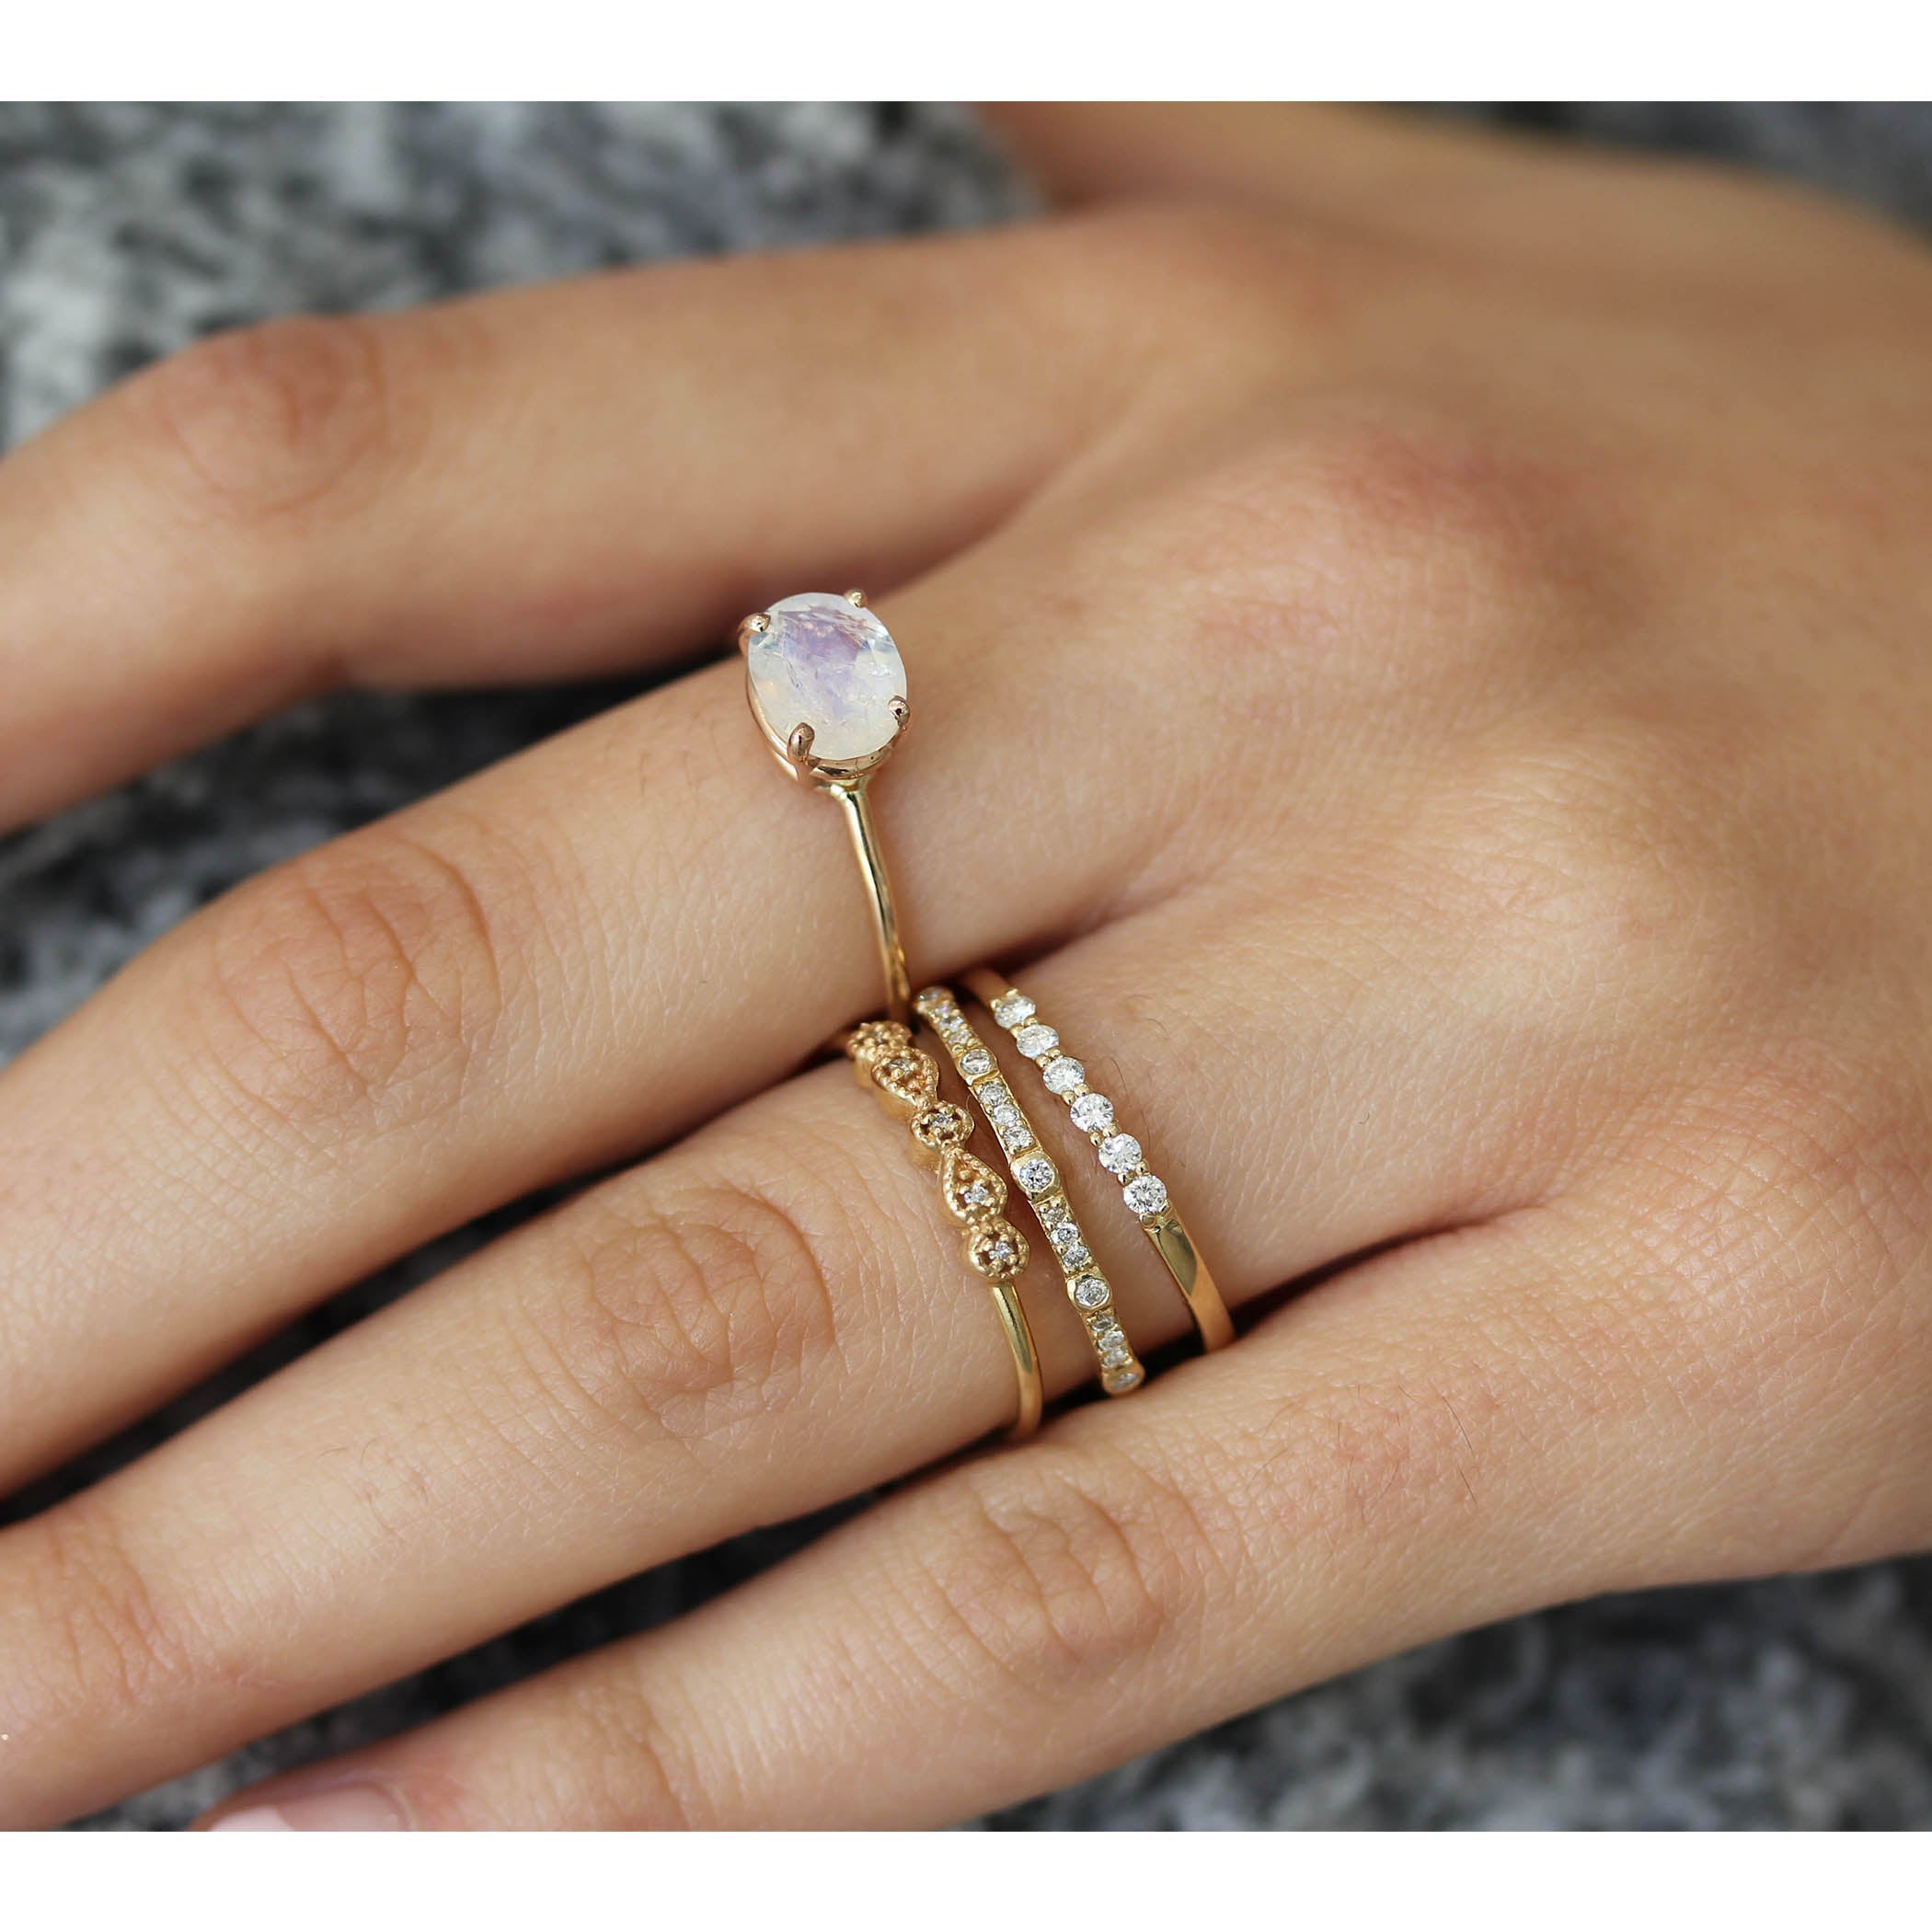 OVAL FACETED RAINBOW MOONSTONE RING